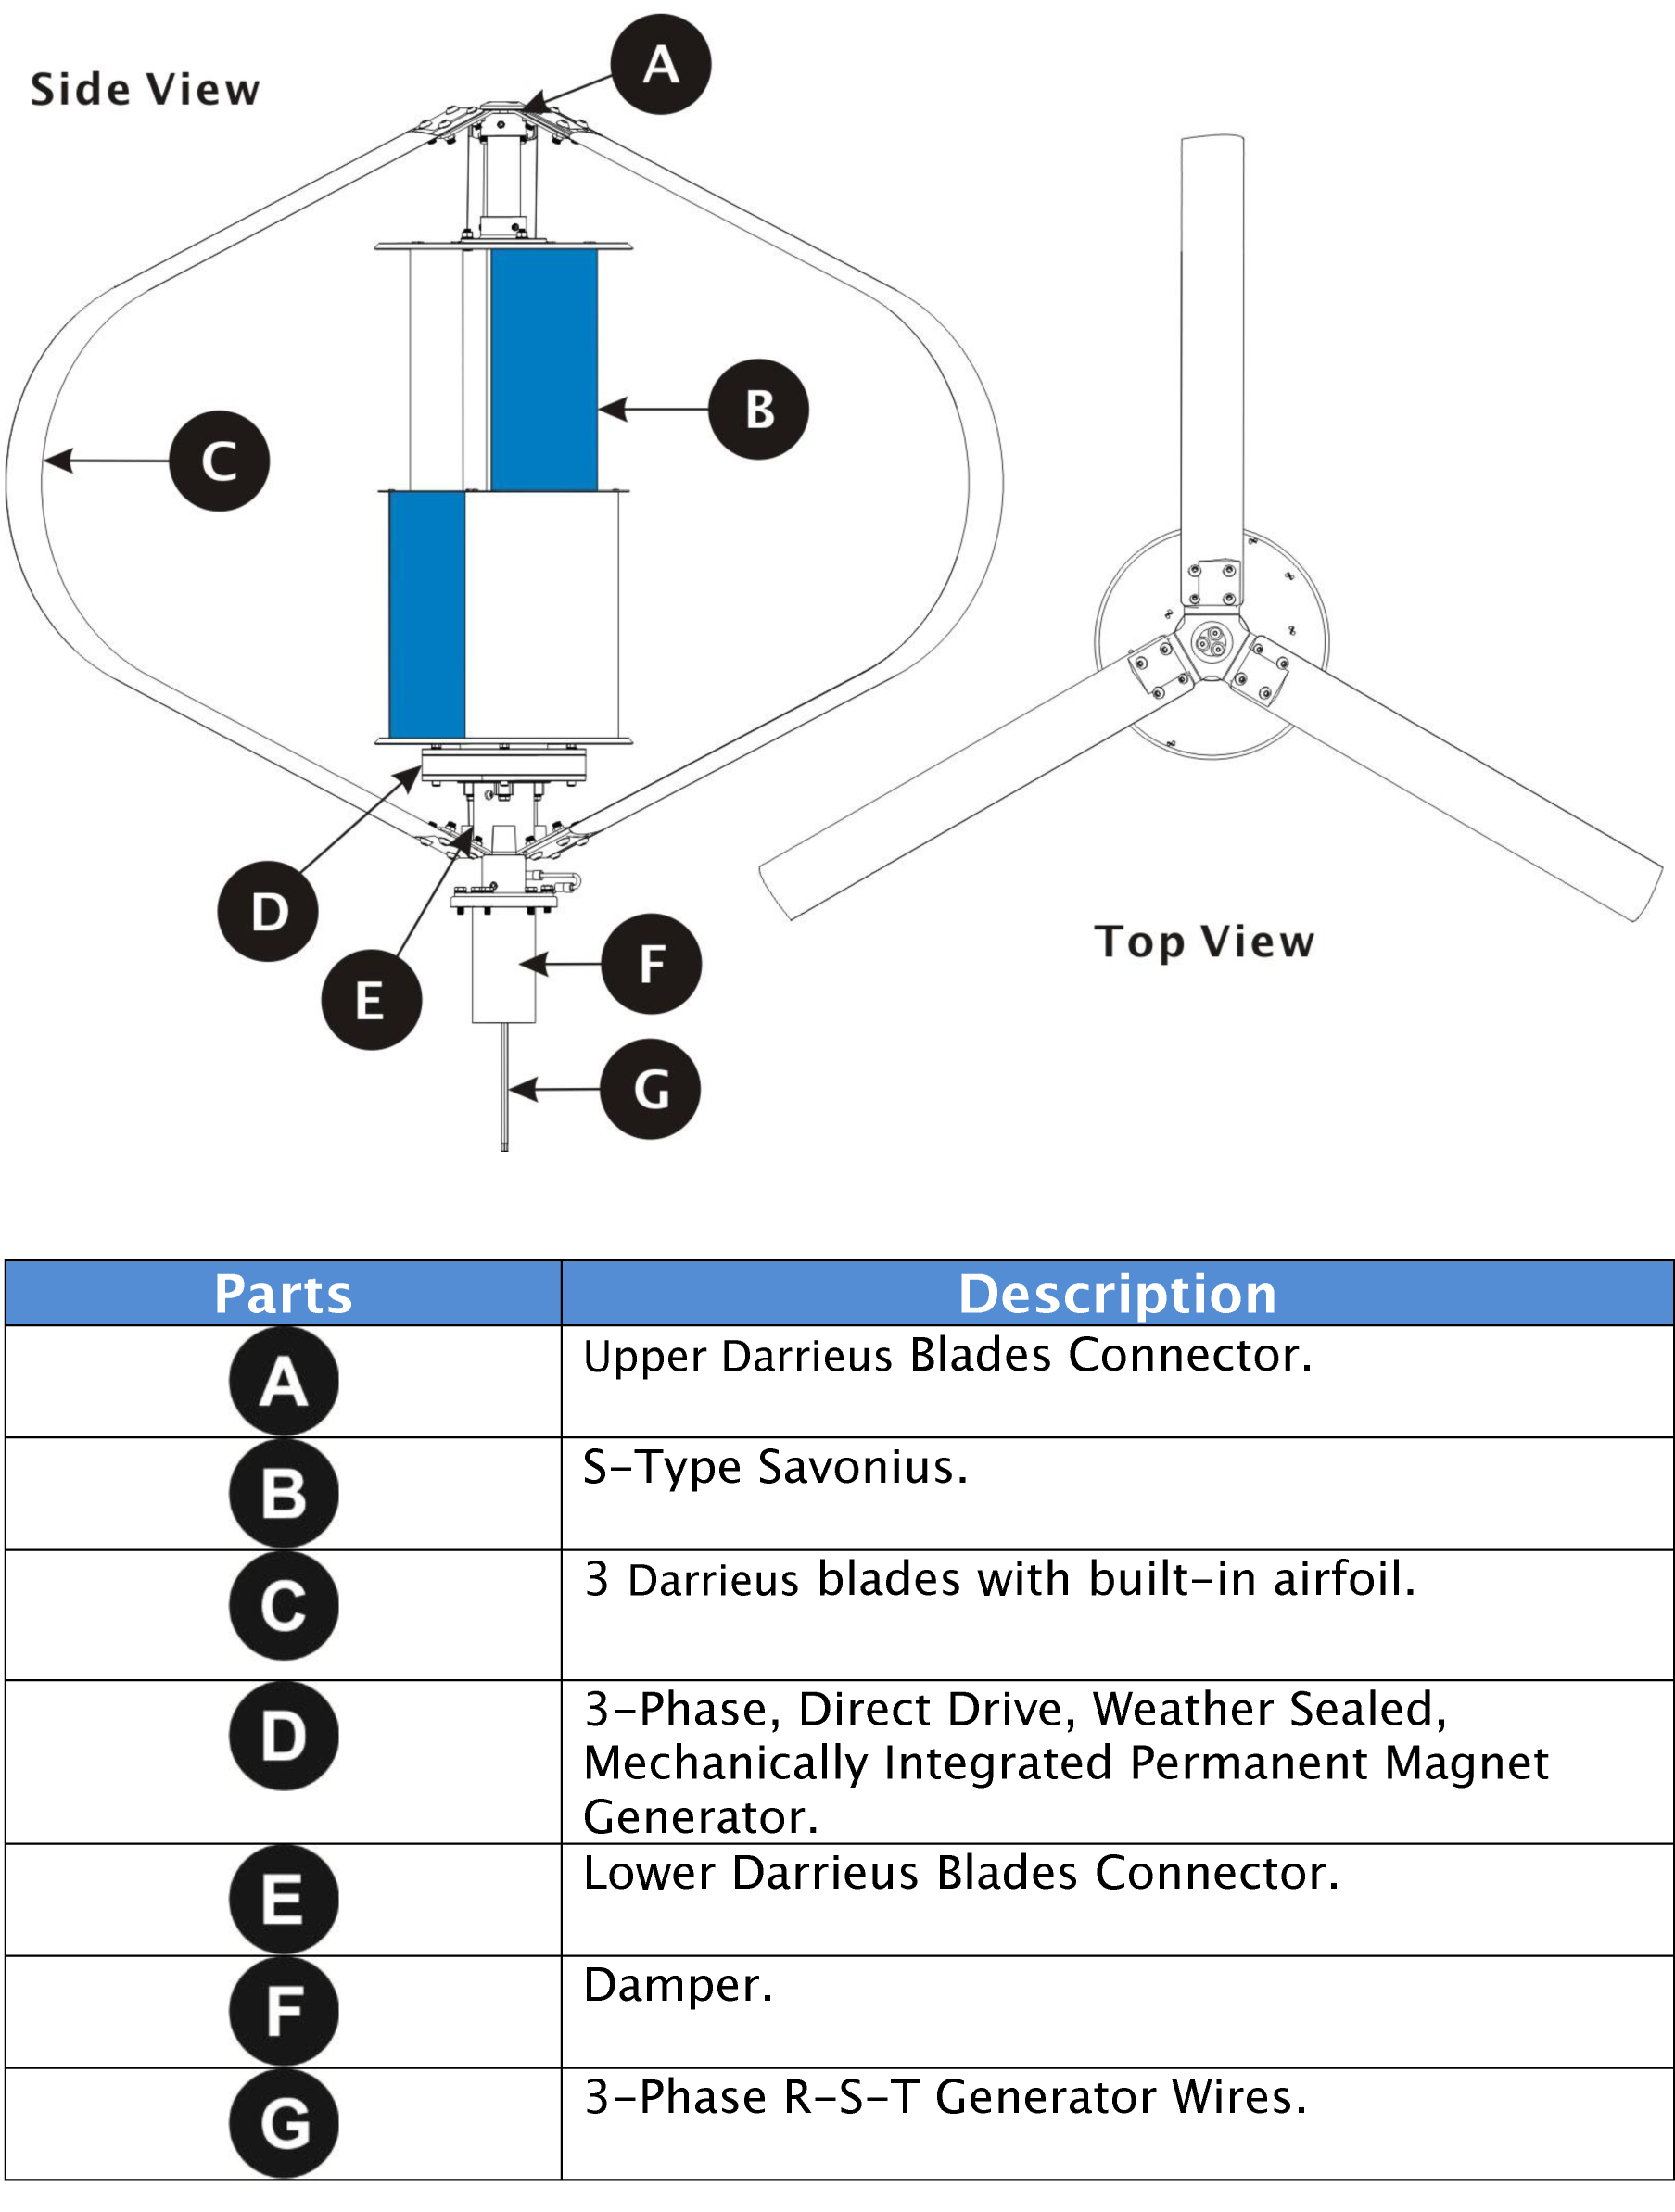 Wind Turbine Ds300 With Double Rotor On The Same Axis 3 Phase Wire Diagram Italian C1 2 71 72 81 Various Screws For Darrieus Blade Connections Flange Of Pole